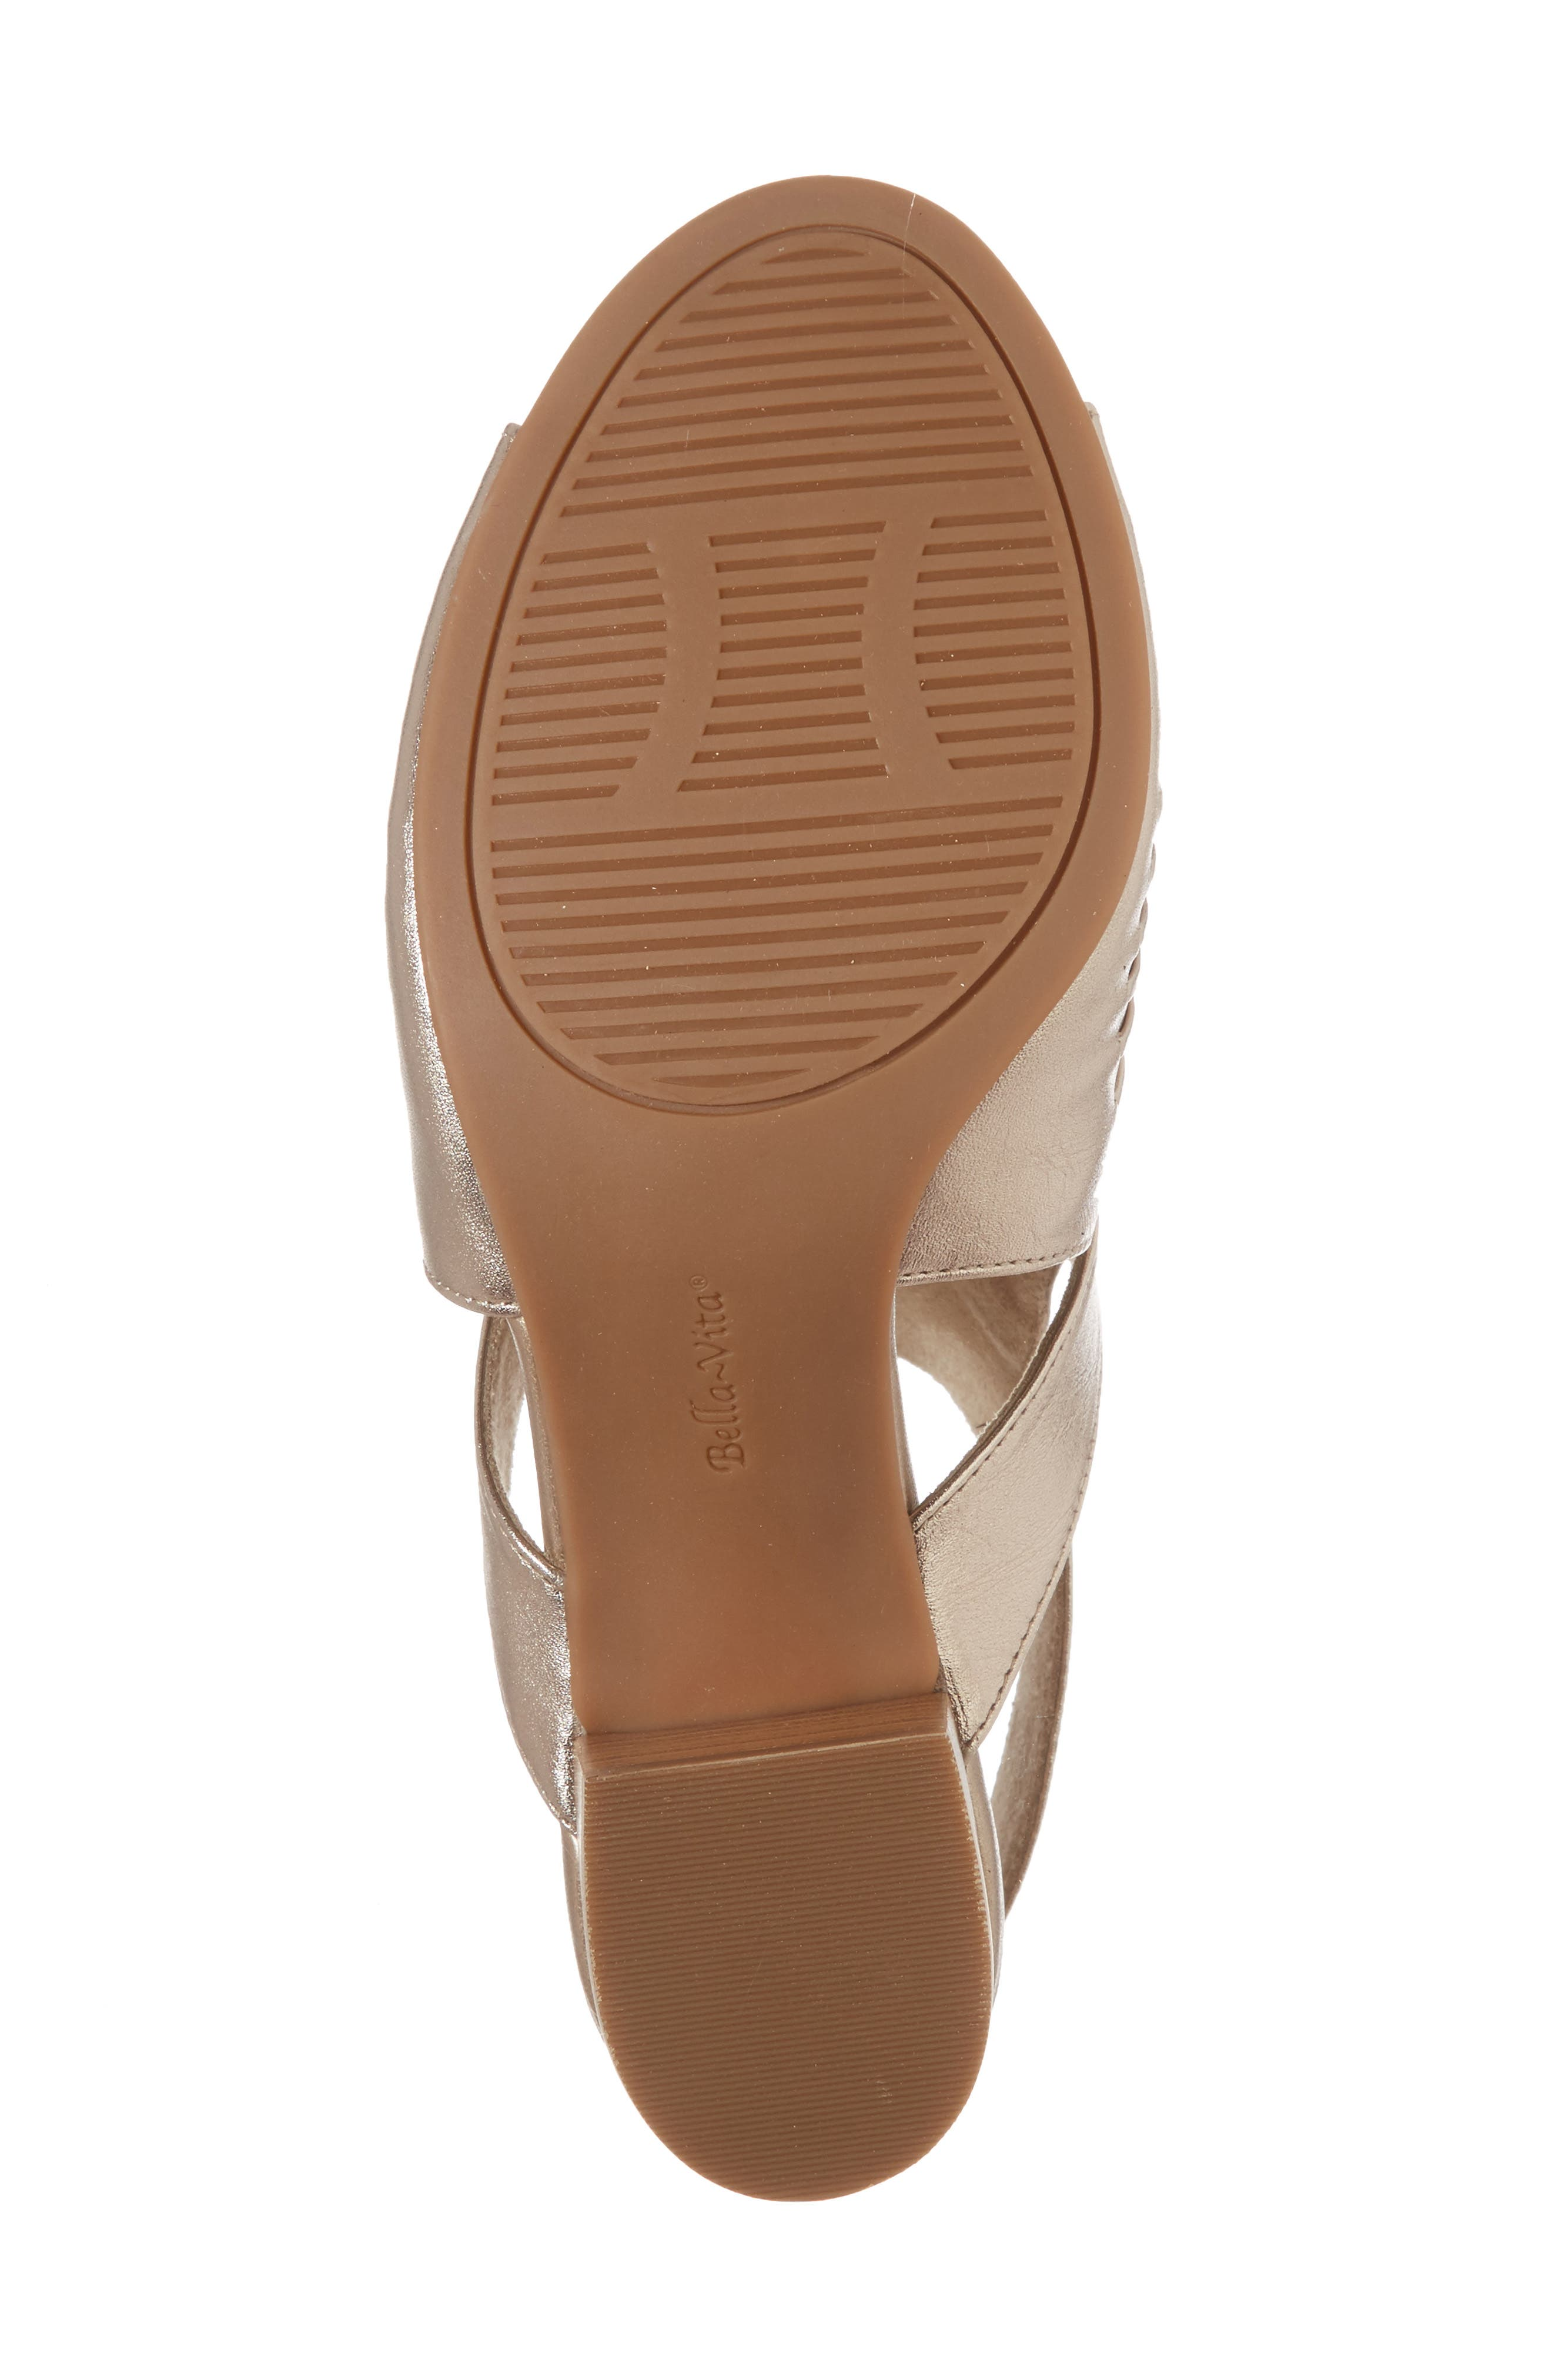 Finley Ankle Strap Sandal,                             Alternate thumbnail 6, color,                             Champagne Fabric